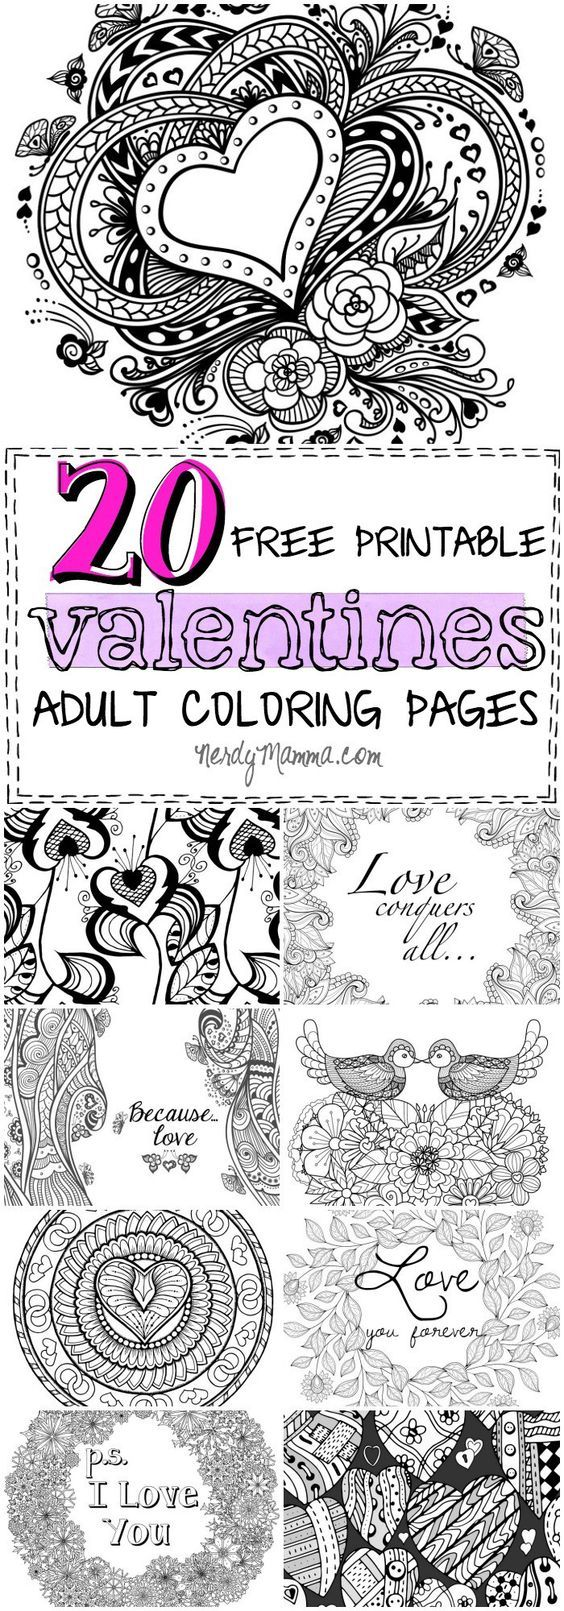 These 20 Valentines Free Printable Adult Coloring Pages are so ...